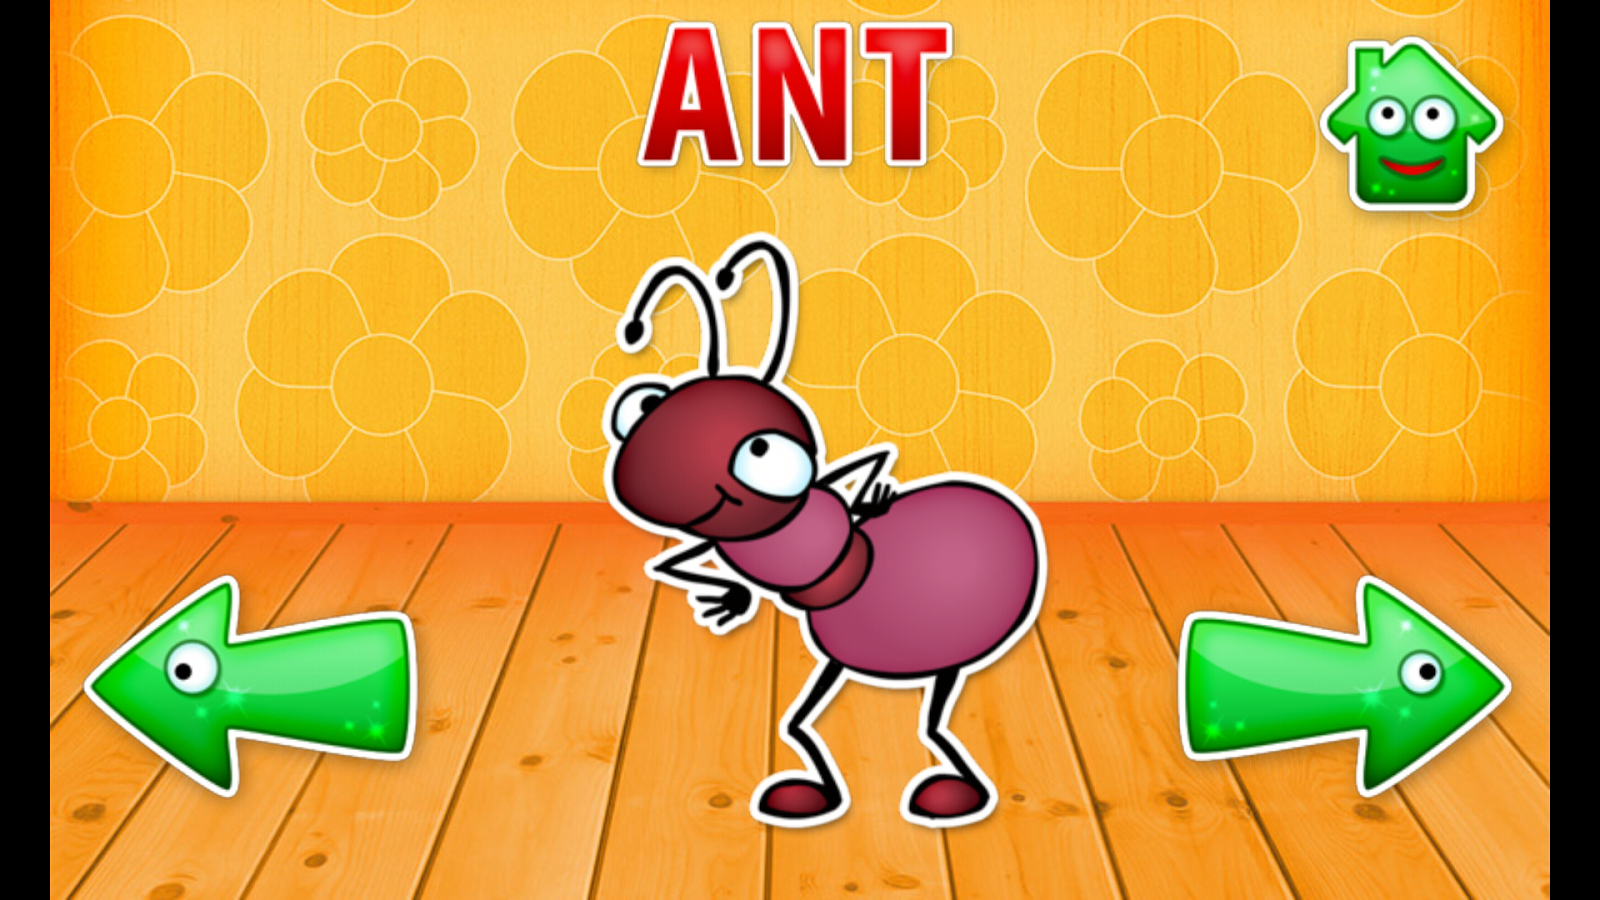 Worksheet Kid Flash Cards 123 kids fun flashcards games android apps on google play screenshot